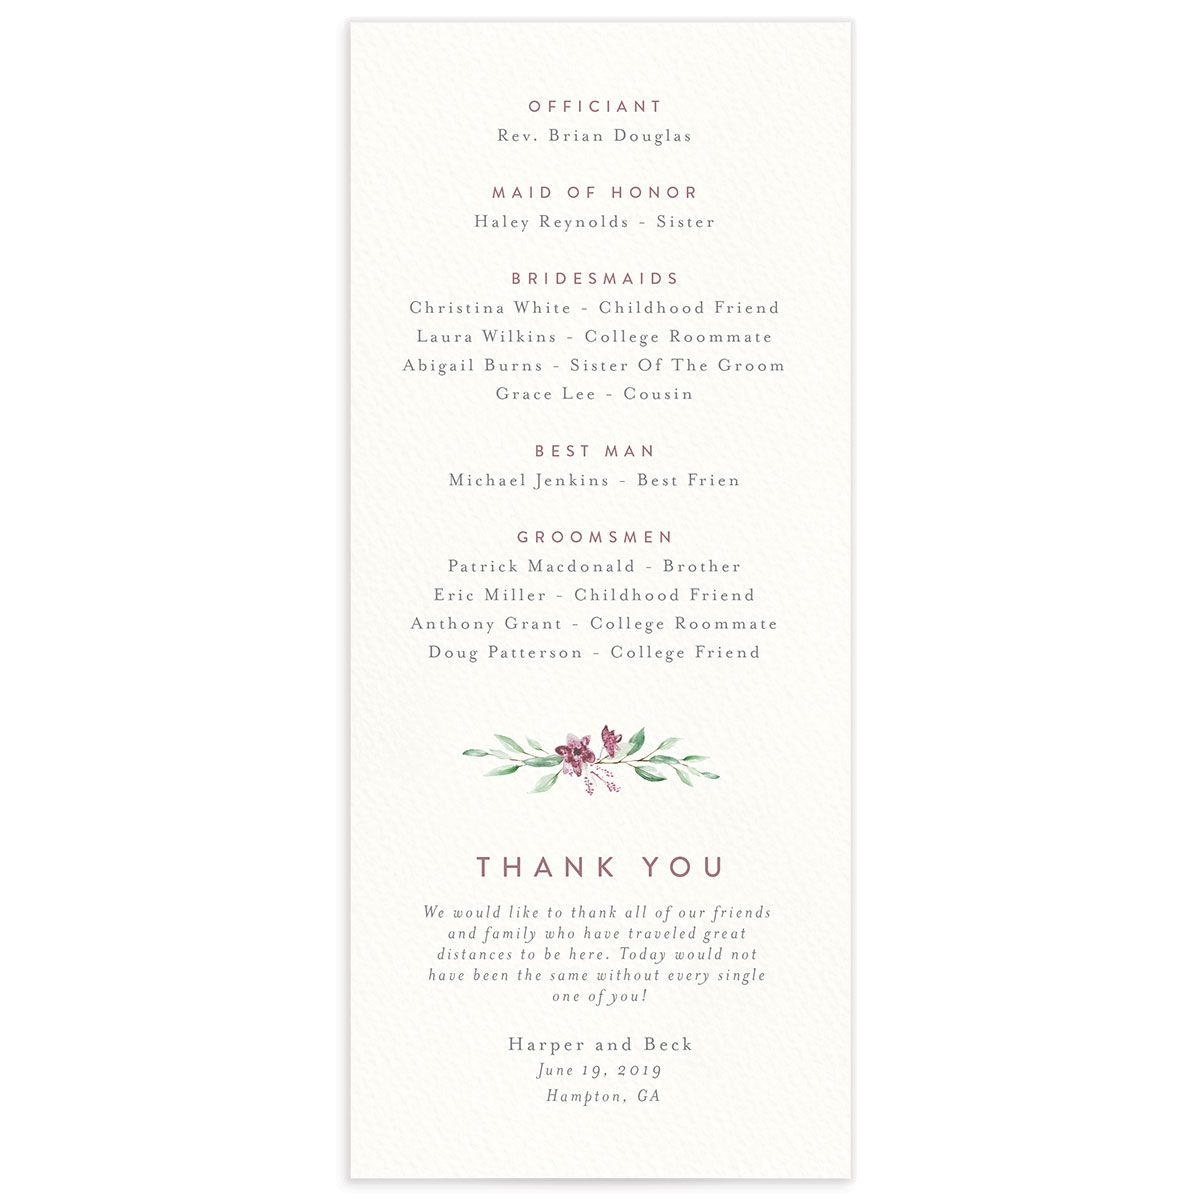 watercolor crest wedding programs in pink back